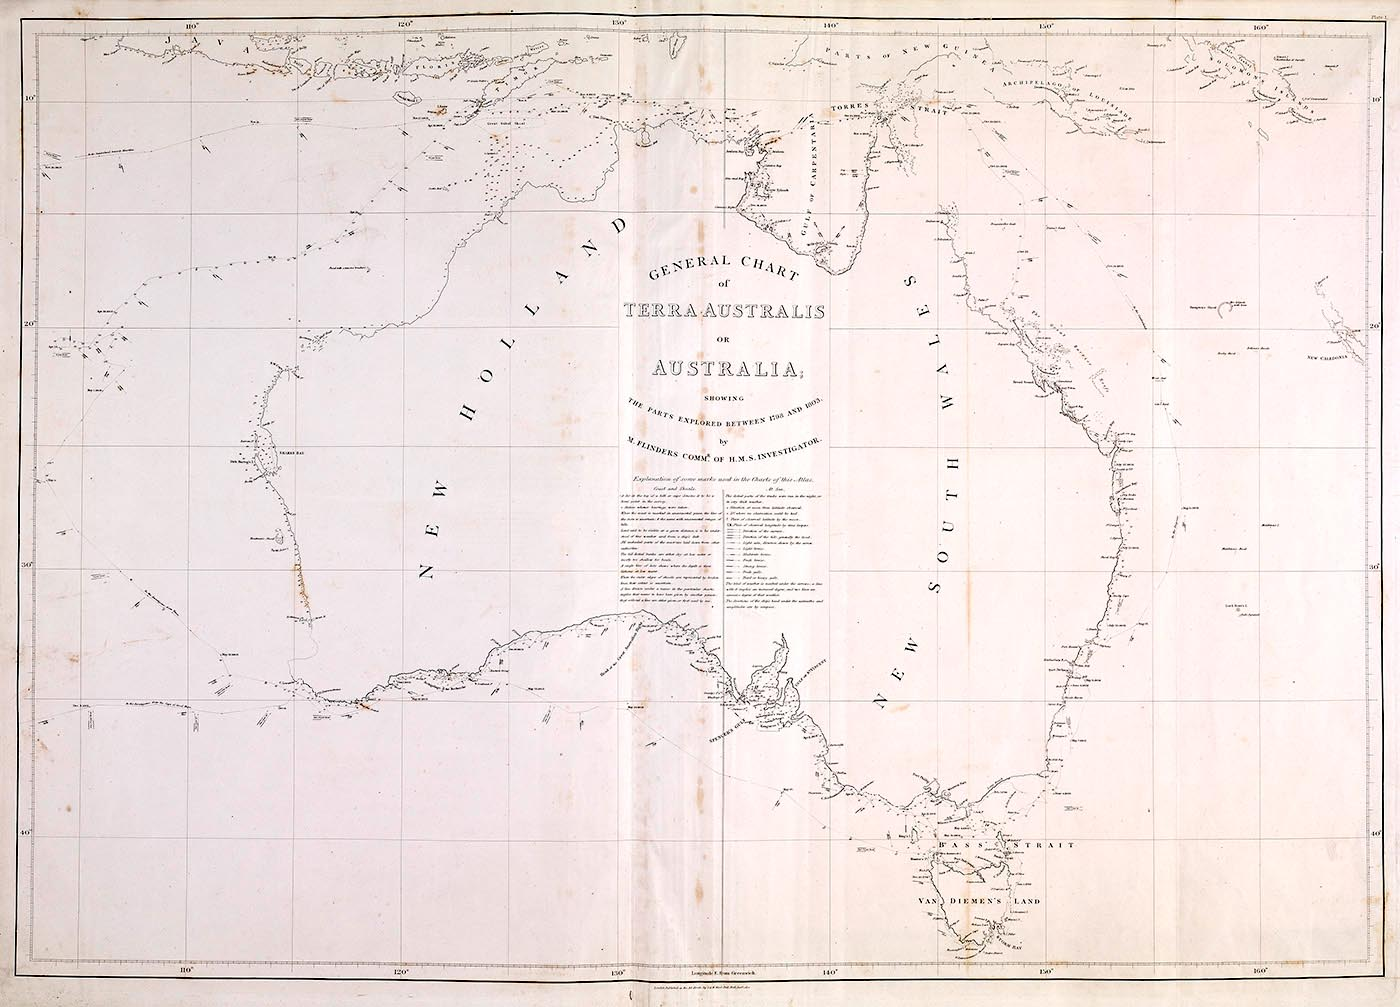 Hand-drawn map of Australia